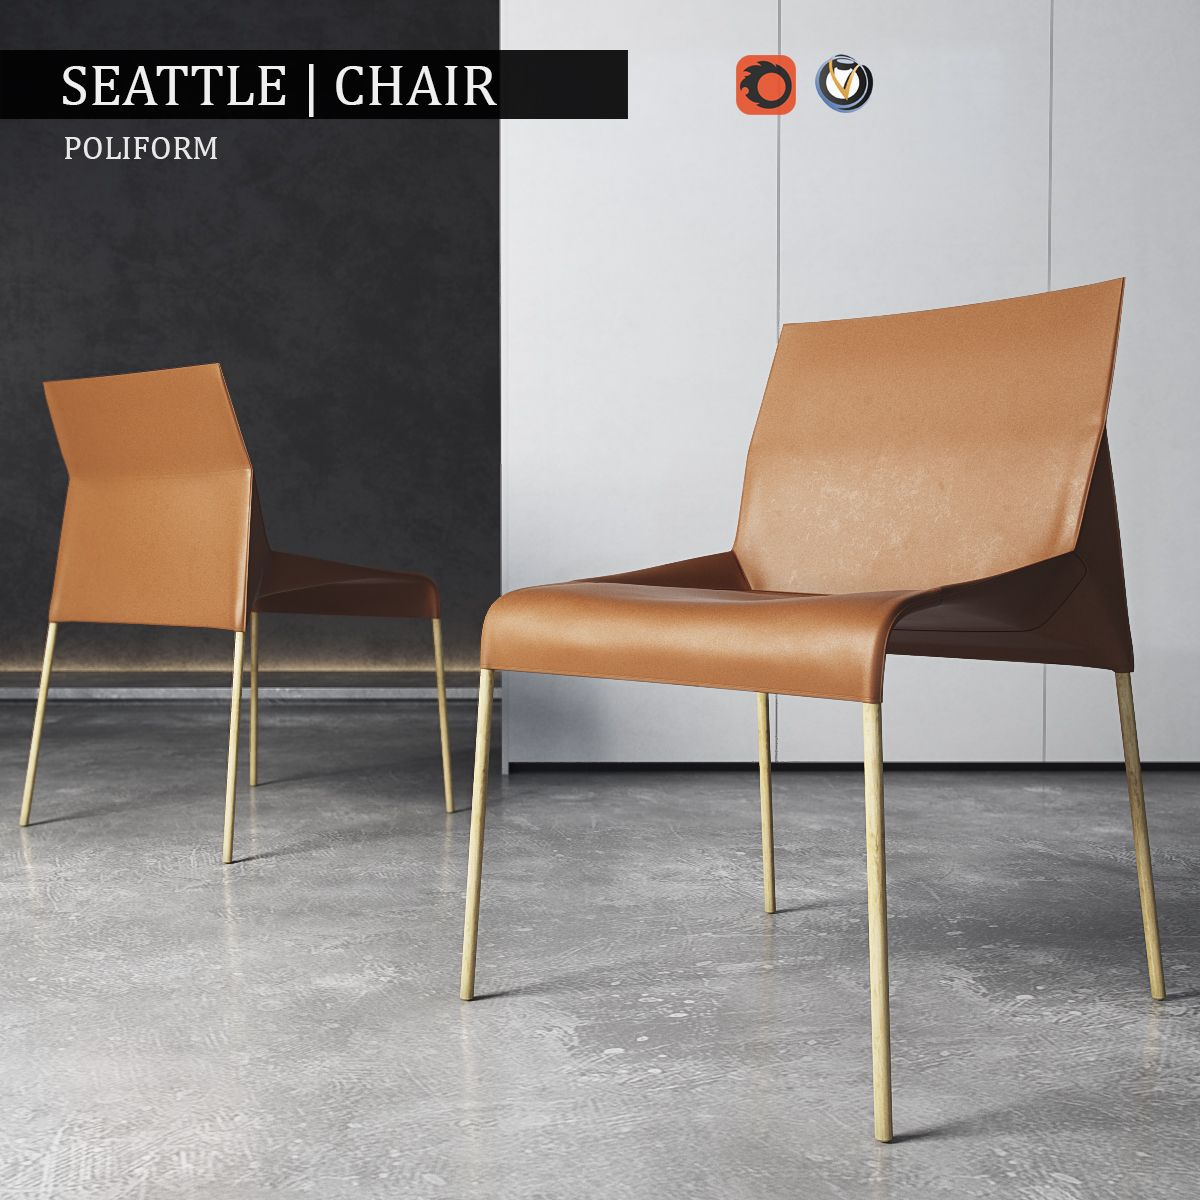 Chair Poliform Seattle | 3D model